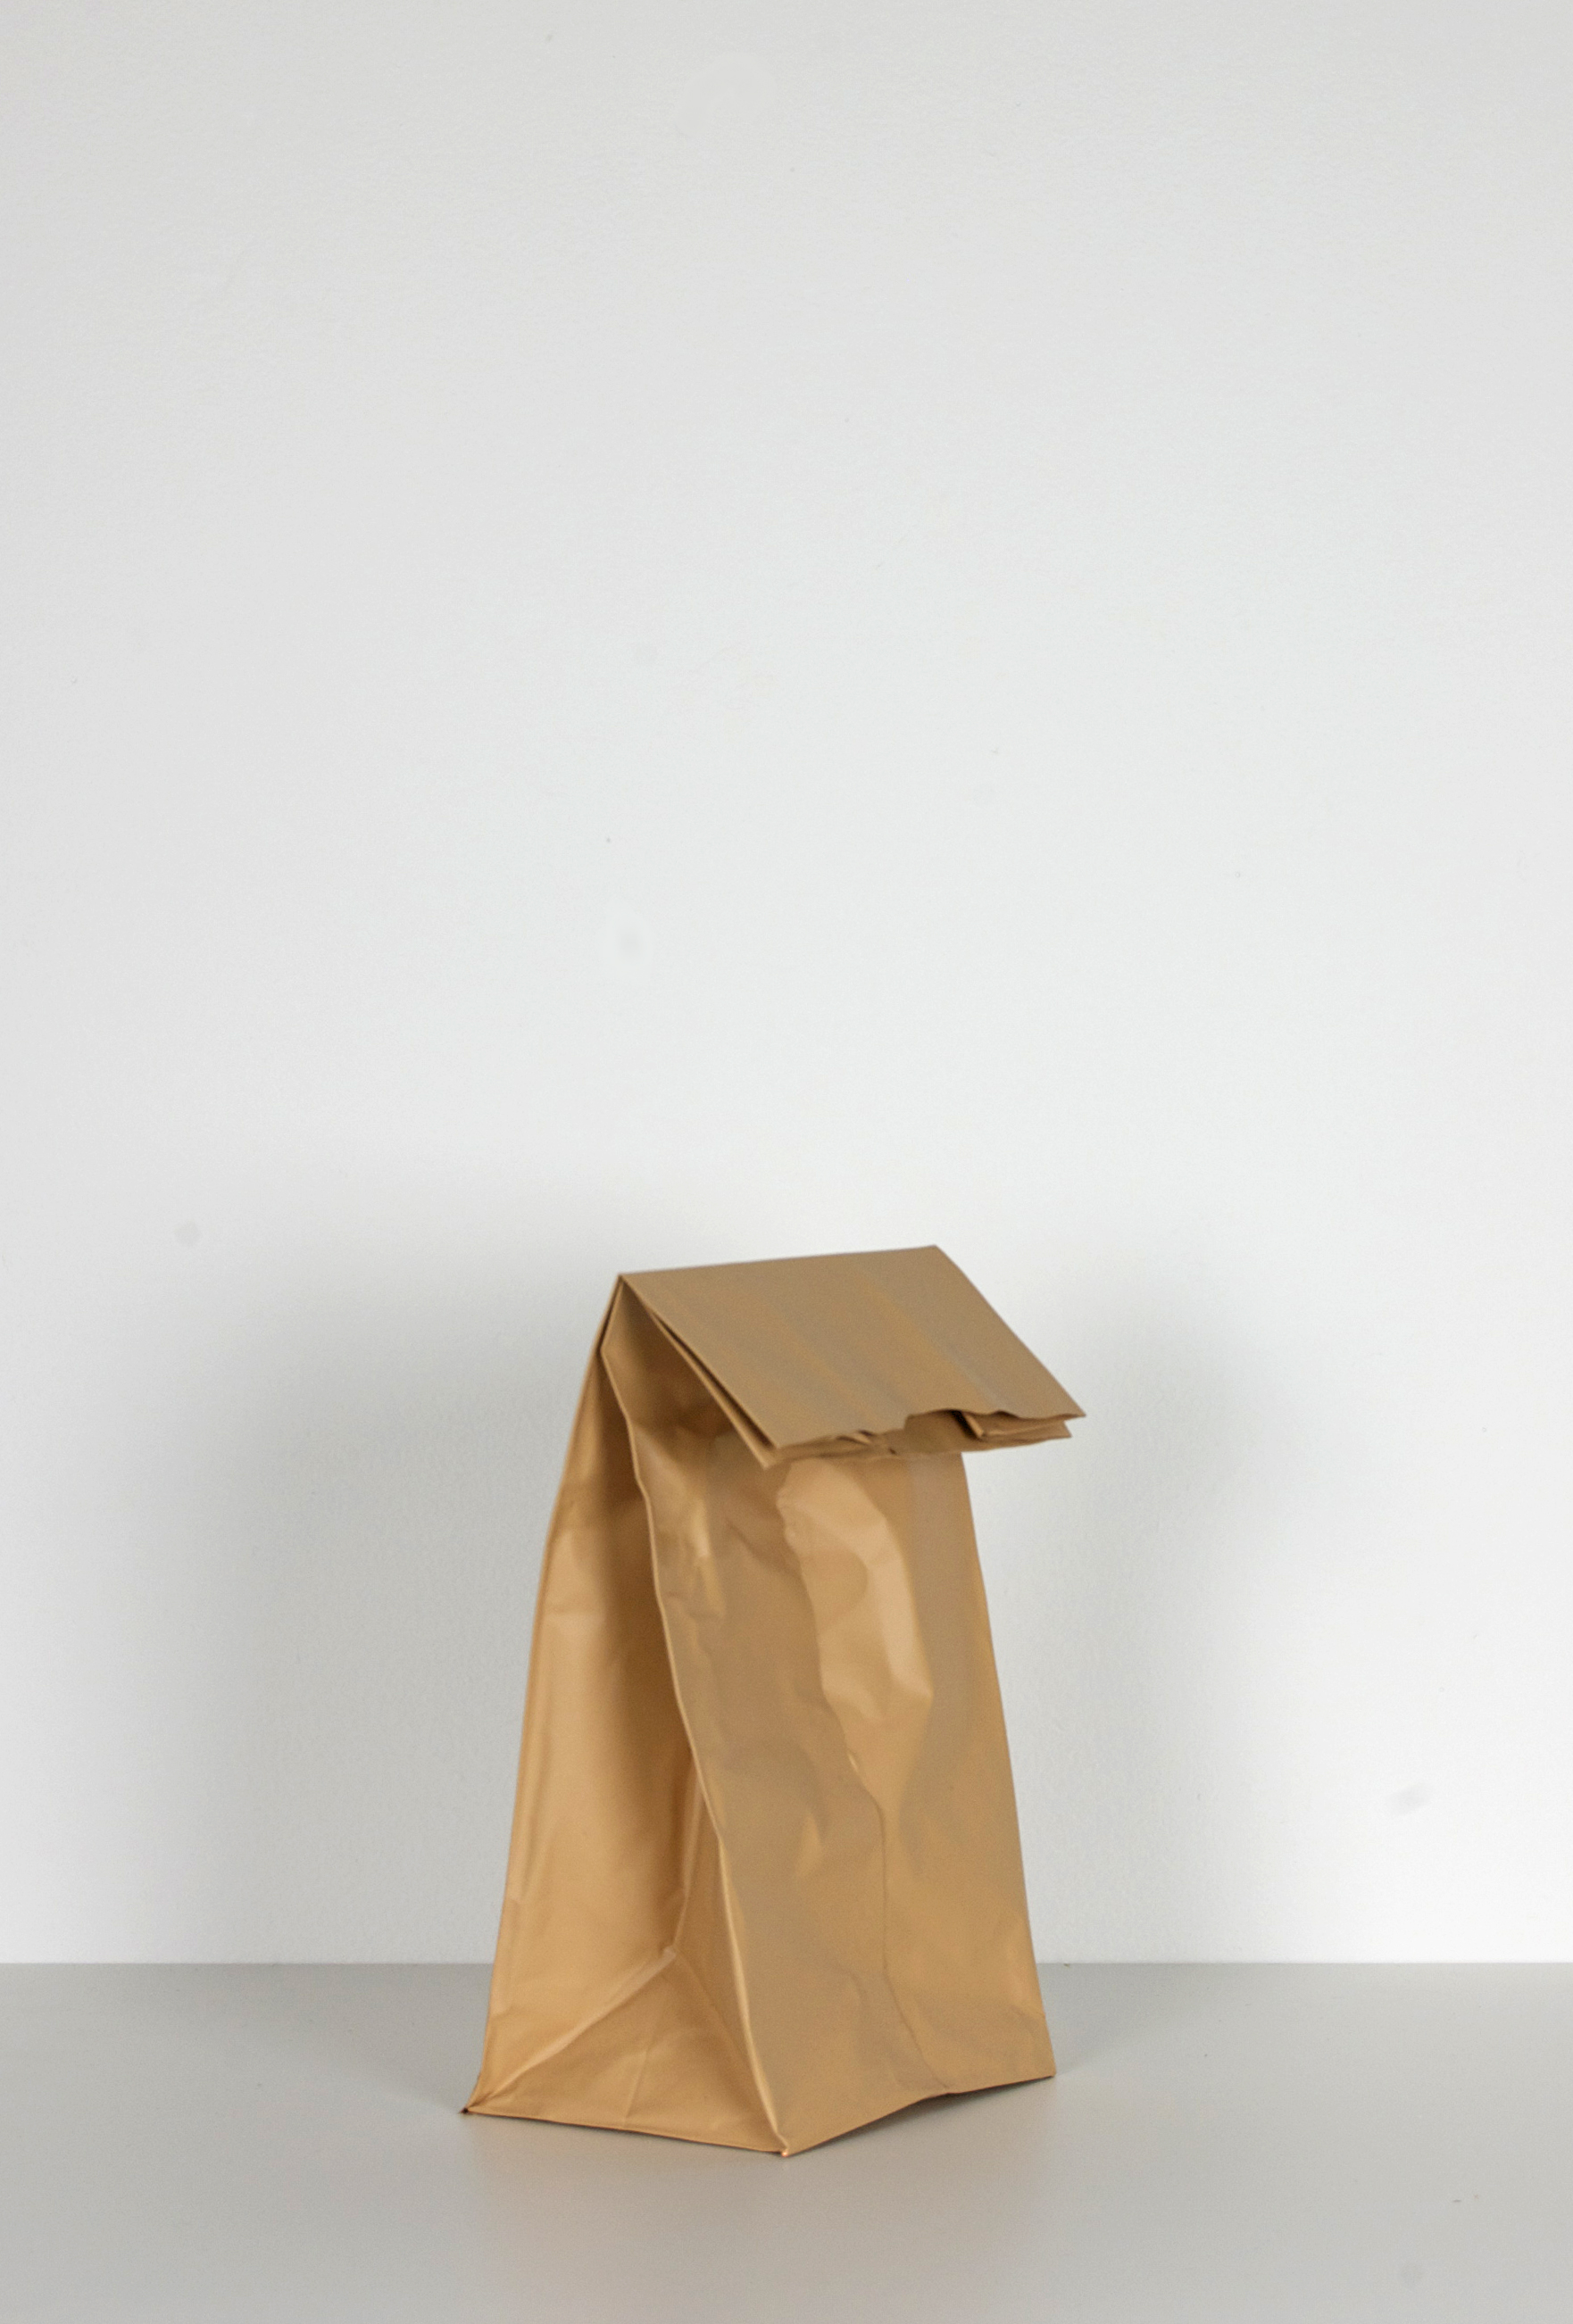 "Beer Bag Series 2, 2014, Acrylic on copper, 9"" x 6"" x 4"""